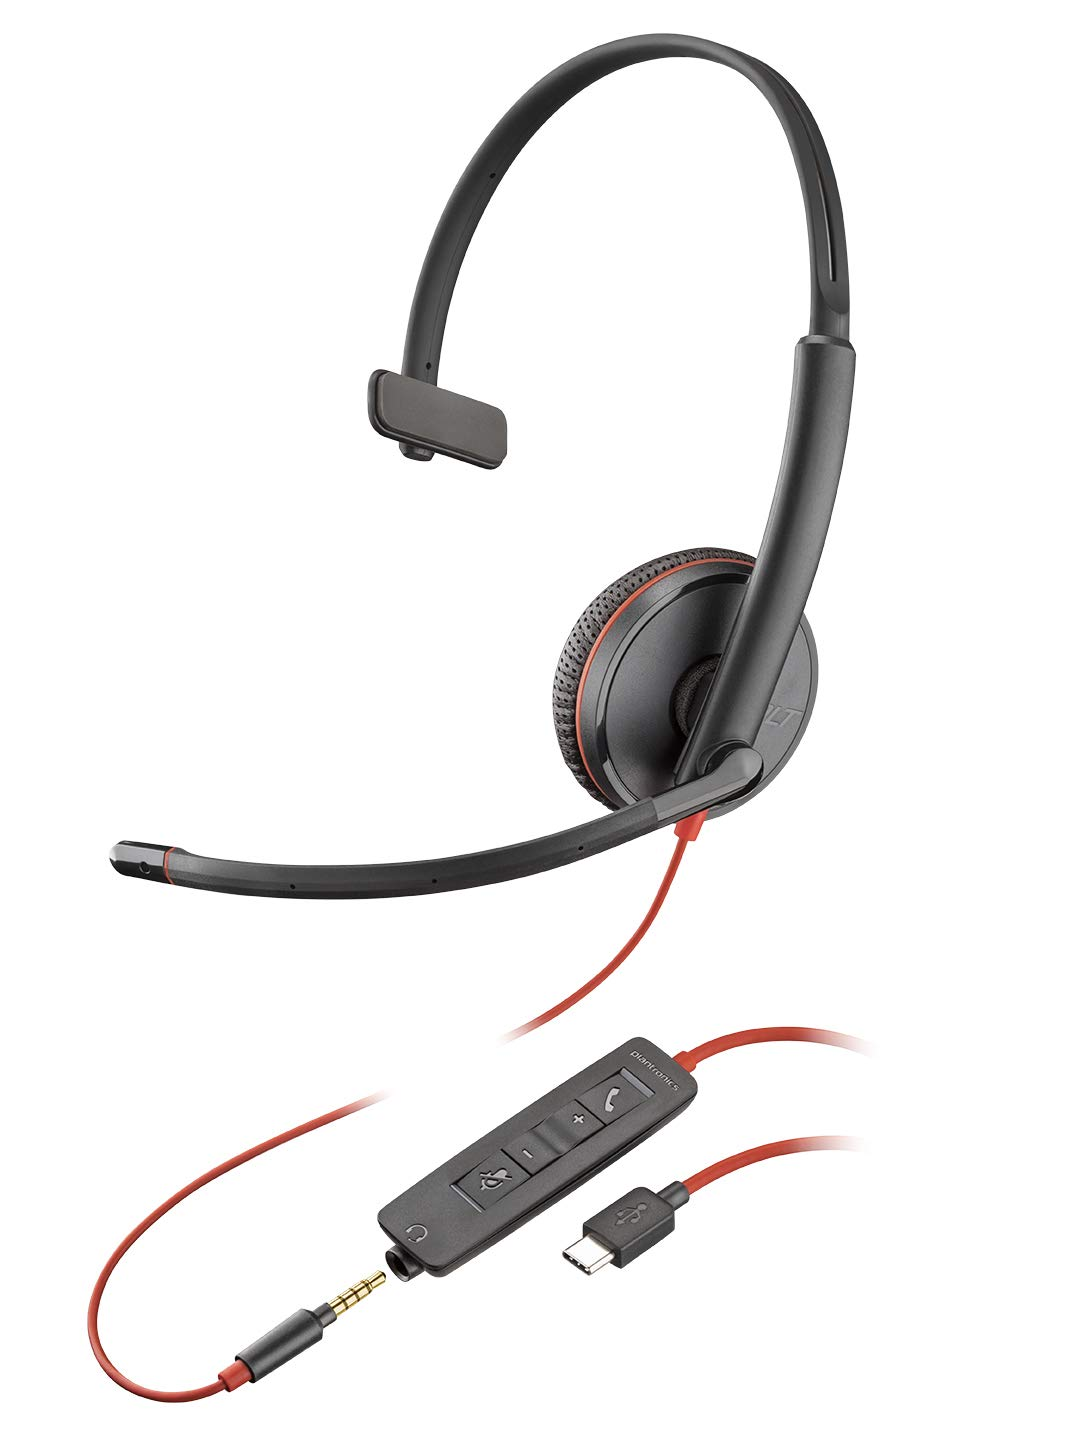 Plantronics Blackwire 3200 Stereo Corded UC Headset With USB /& 3.5mm Smart Phone Connectivity